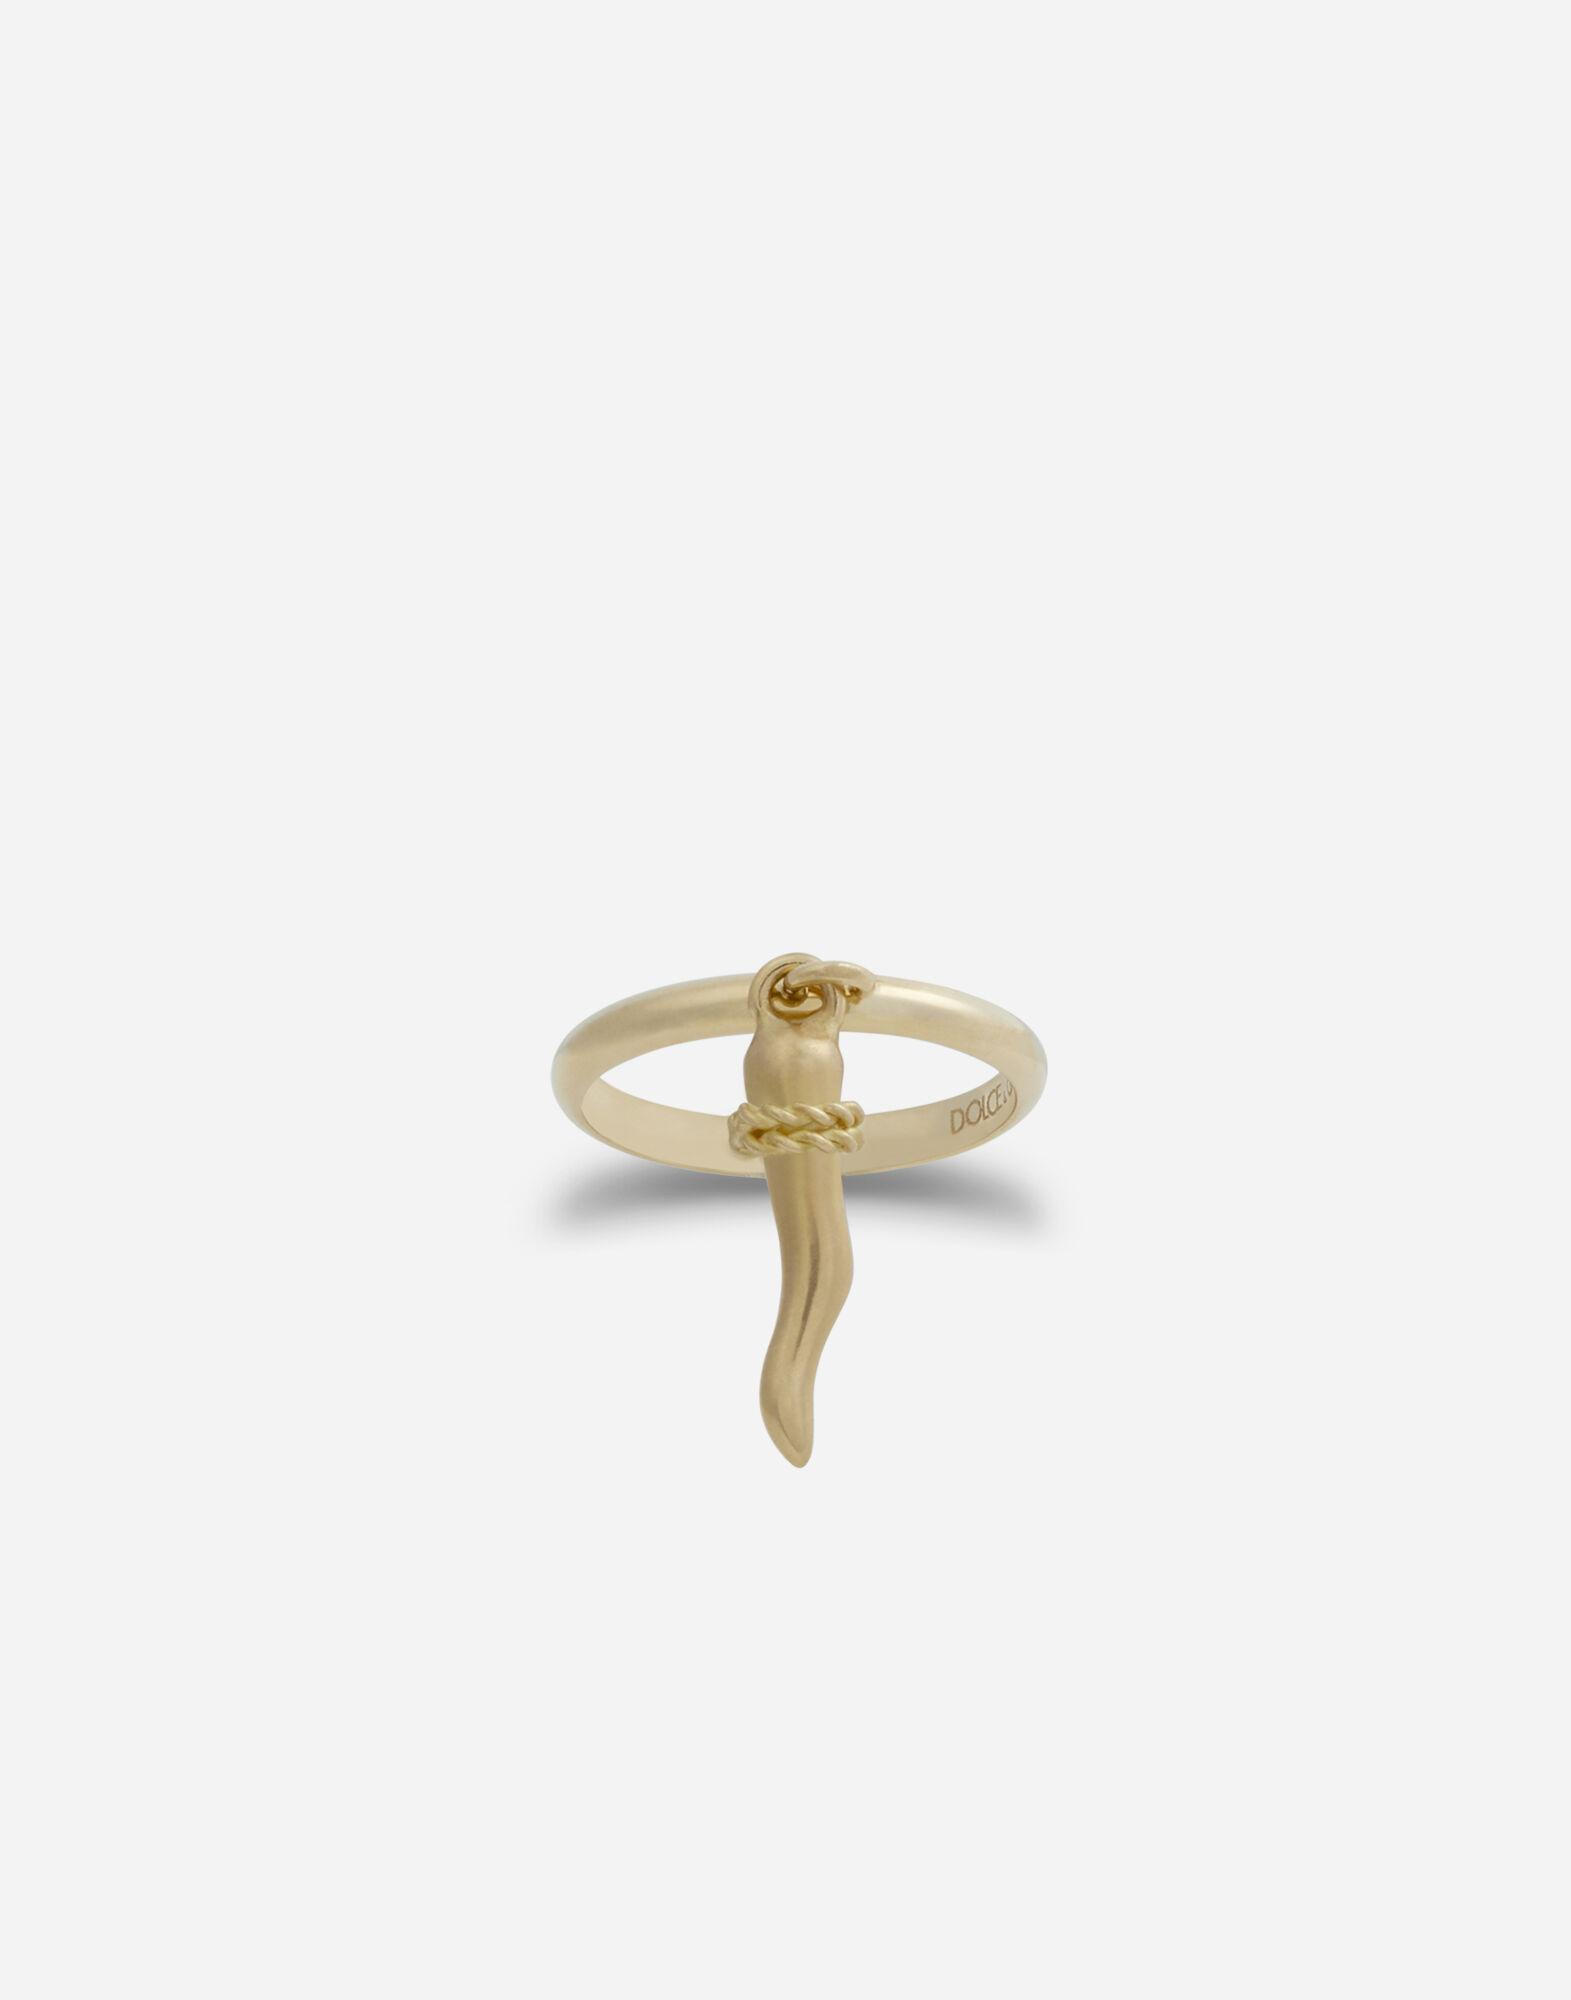 Family ring in yellow gold